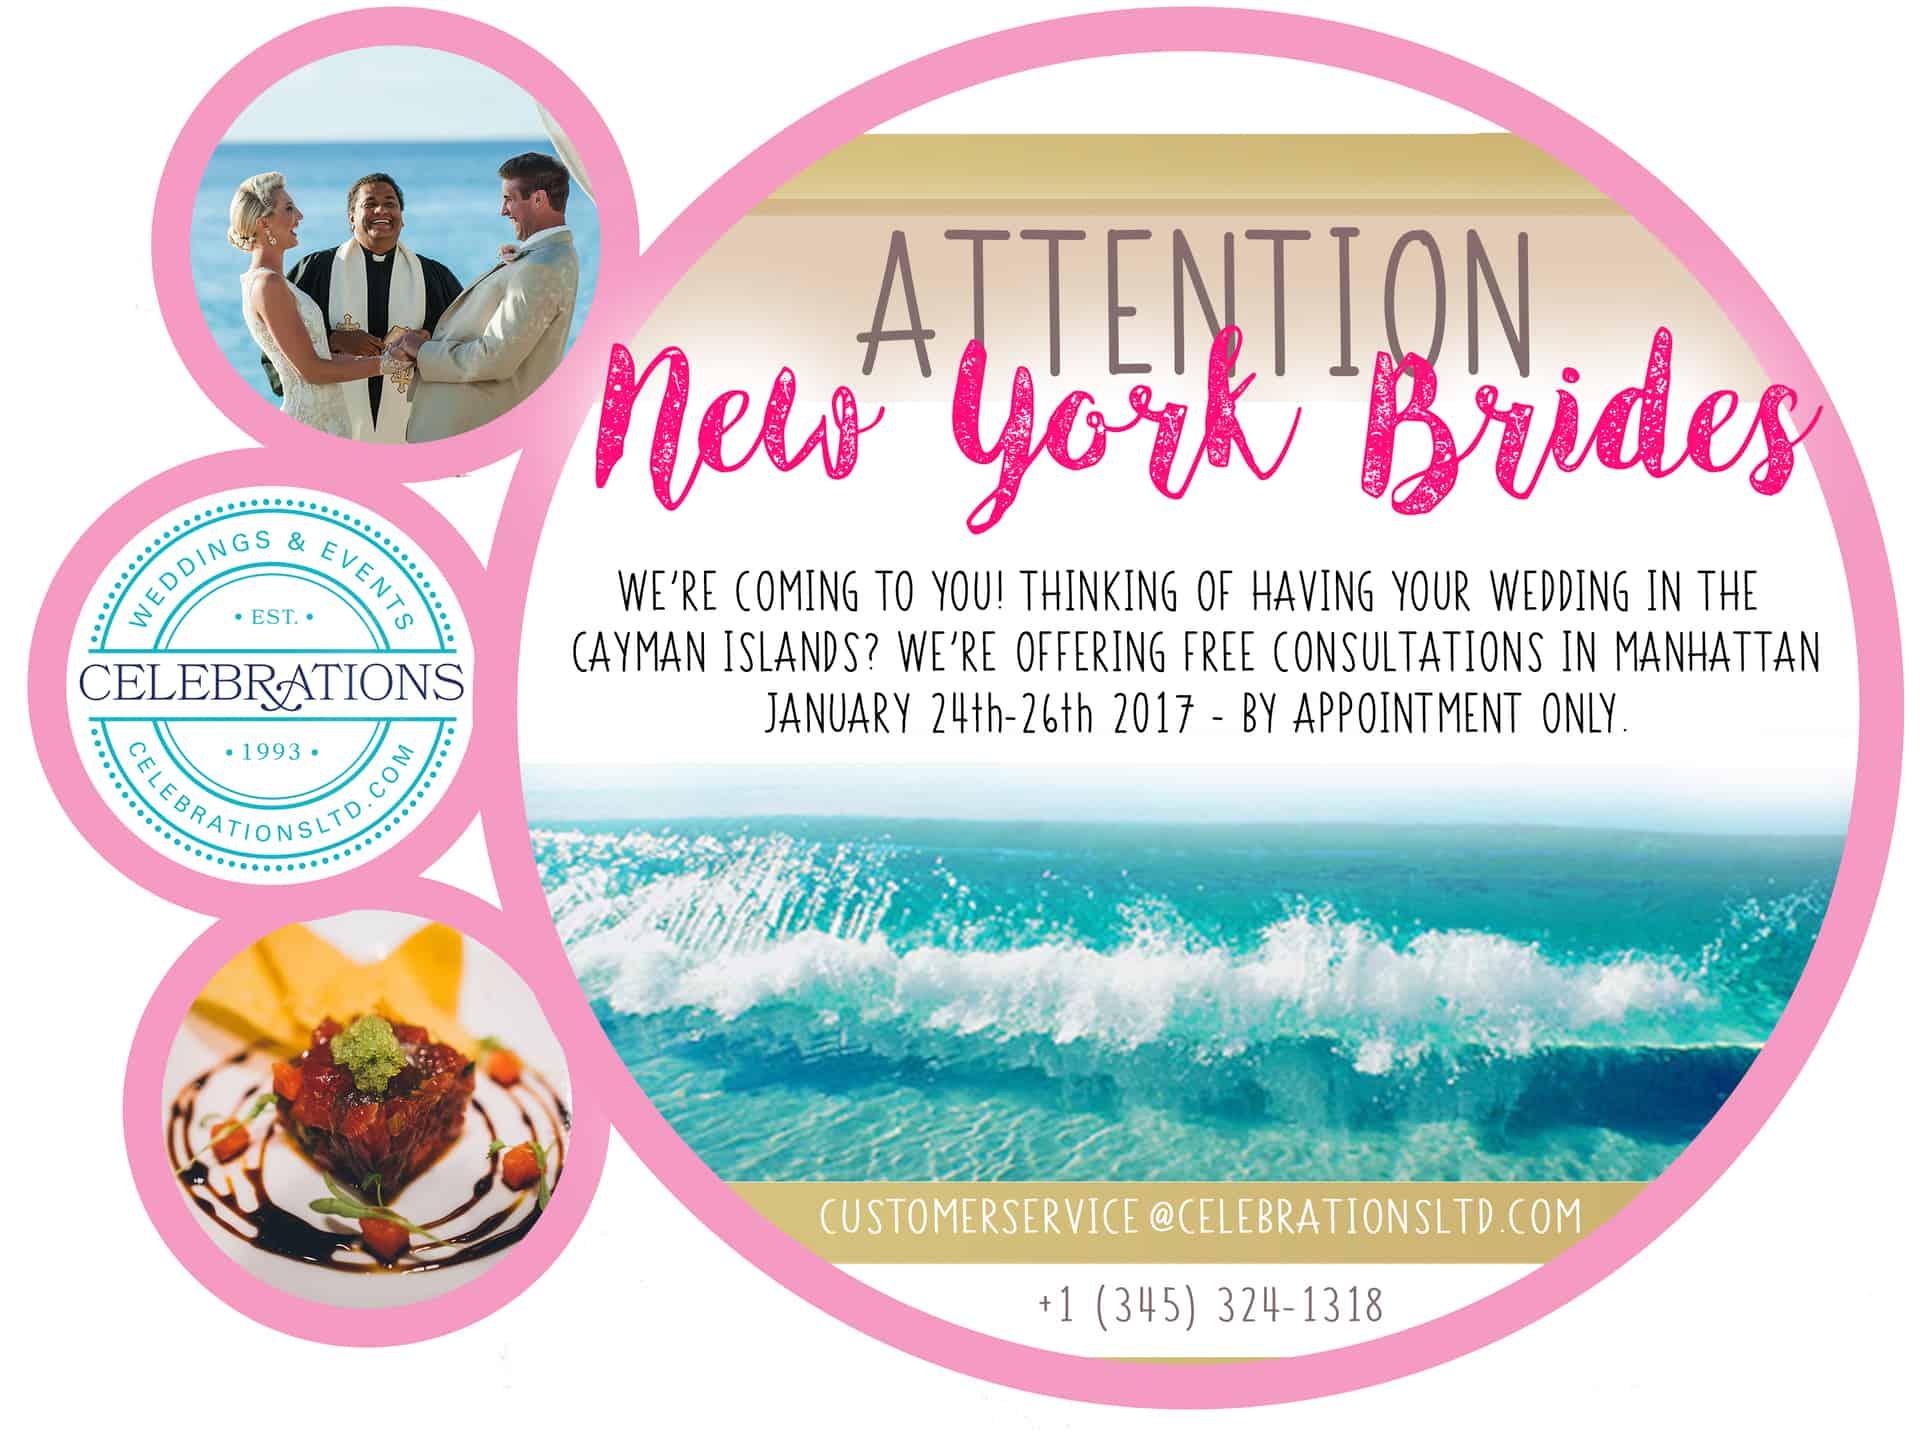 WE'RE COMING TO NEW YORK! FREE CAYMAN ISLANDS WEDDING CONSULTATIONS IN MANHATTAN